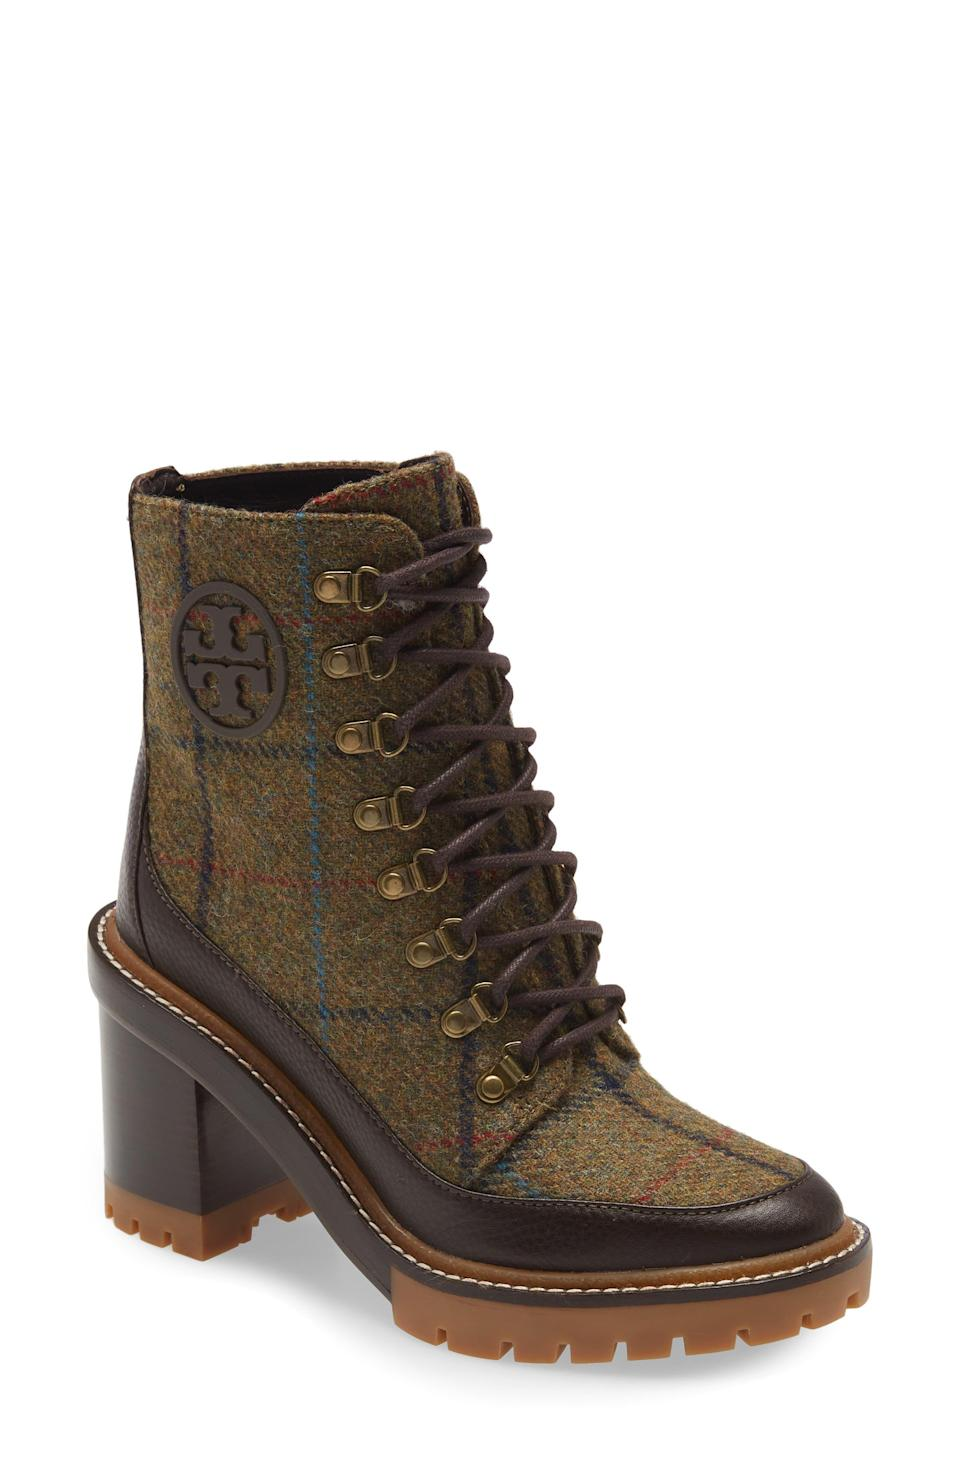 """<p><strong>Tory Burch</strong></p><p>nordstrom.com</p><p><strong>$498.00</strong></p><p><a href=""""https://go.redirectingat.com?id=74968X1596630&url=https%3A%2F%2Fwww.nordstrom.com%2Fs%2Ftory-burch-miller-lugged-wool-blend-leather-bootie-women%2F6430431&sref=https%3A%2F%2Fwww.townandcountrymag.com%2Fstyle%2Ffashion-trends%2Fg28225508%2Ffall-boots%2F"""" rel=""""nofollow noopener"""" target=""""_blank"""" data-ylk=""""slk:Shop Now"""" class=""""link rapid-noclick-resp"""">Shop Now</a></p><p>We love a good plaid style for fall and this lug soled look adds some cool modern edge</p>"""